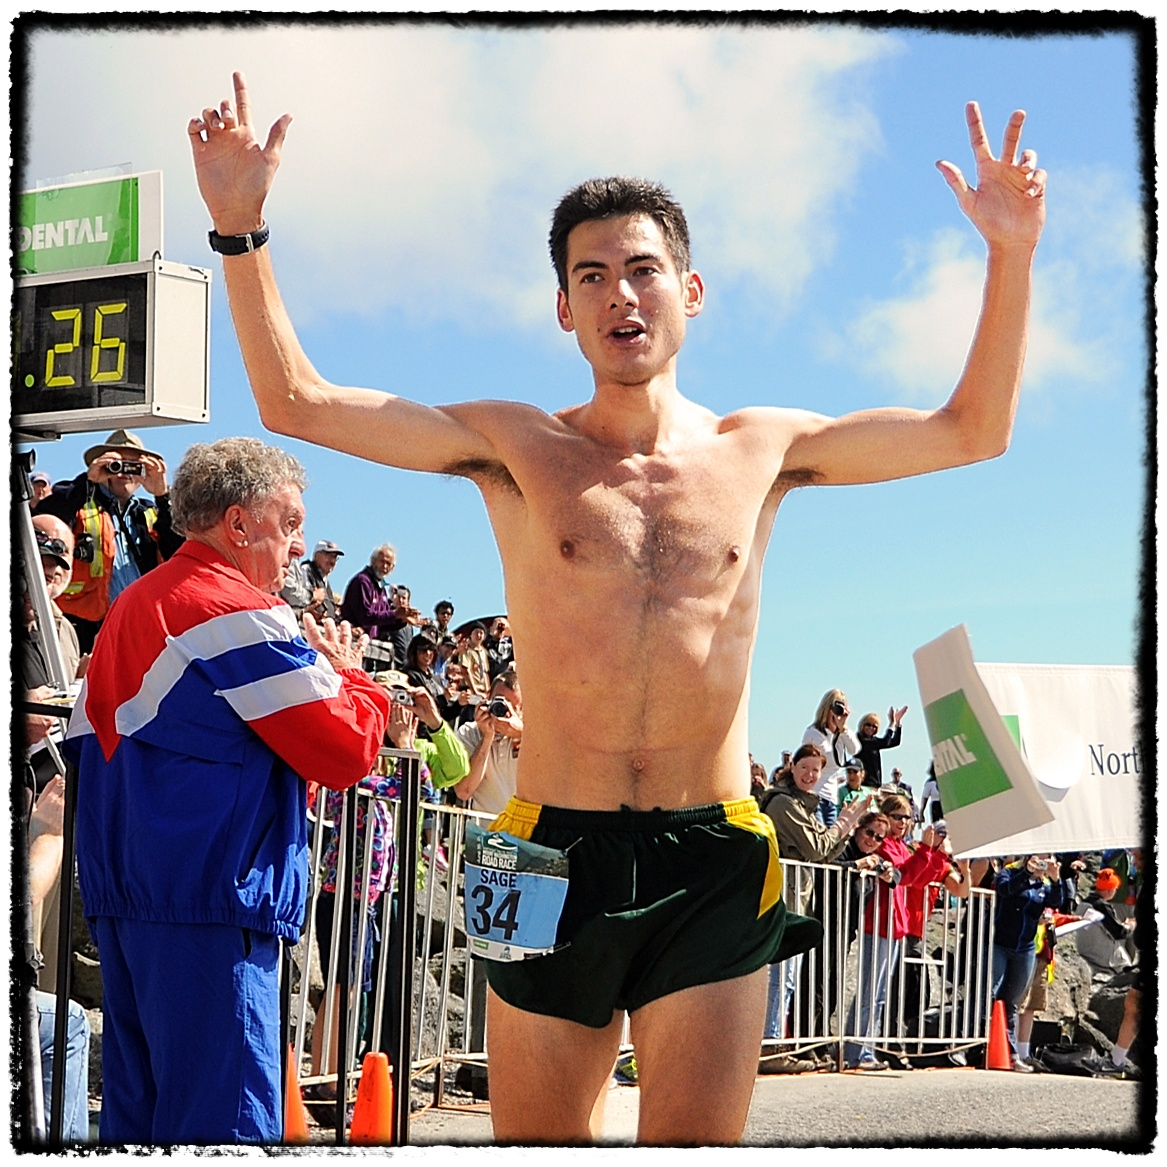 Sage Canaday, of Boulder, raises his hands in victory, after winning the 52nd running of The Northeast Delta Dental Mount Washington Road Race, with an official time of 58:27, in Pinkham Notch, NH, on June 16th, 2012. 1,200 runners raced up the 7.6 mile Mo